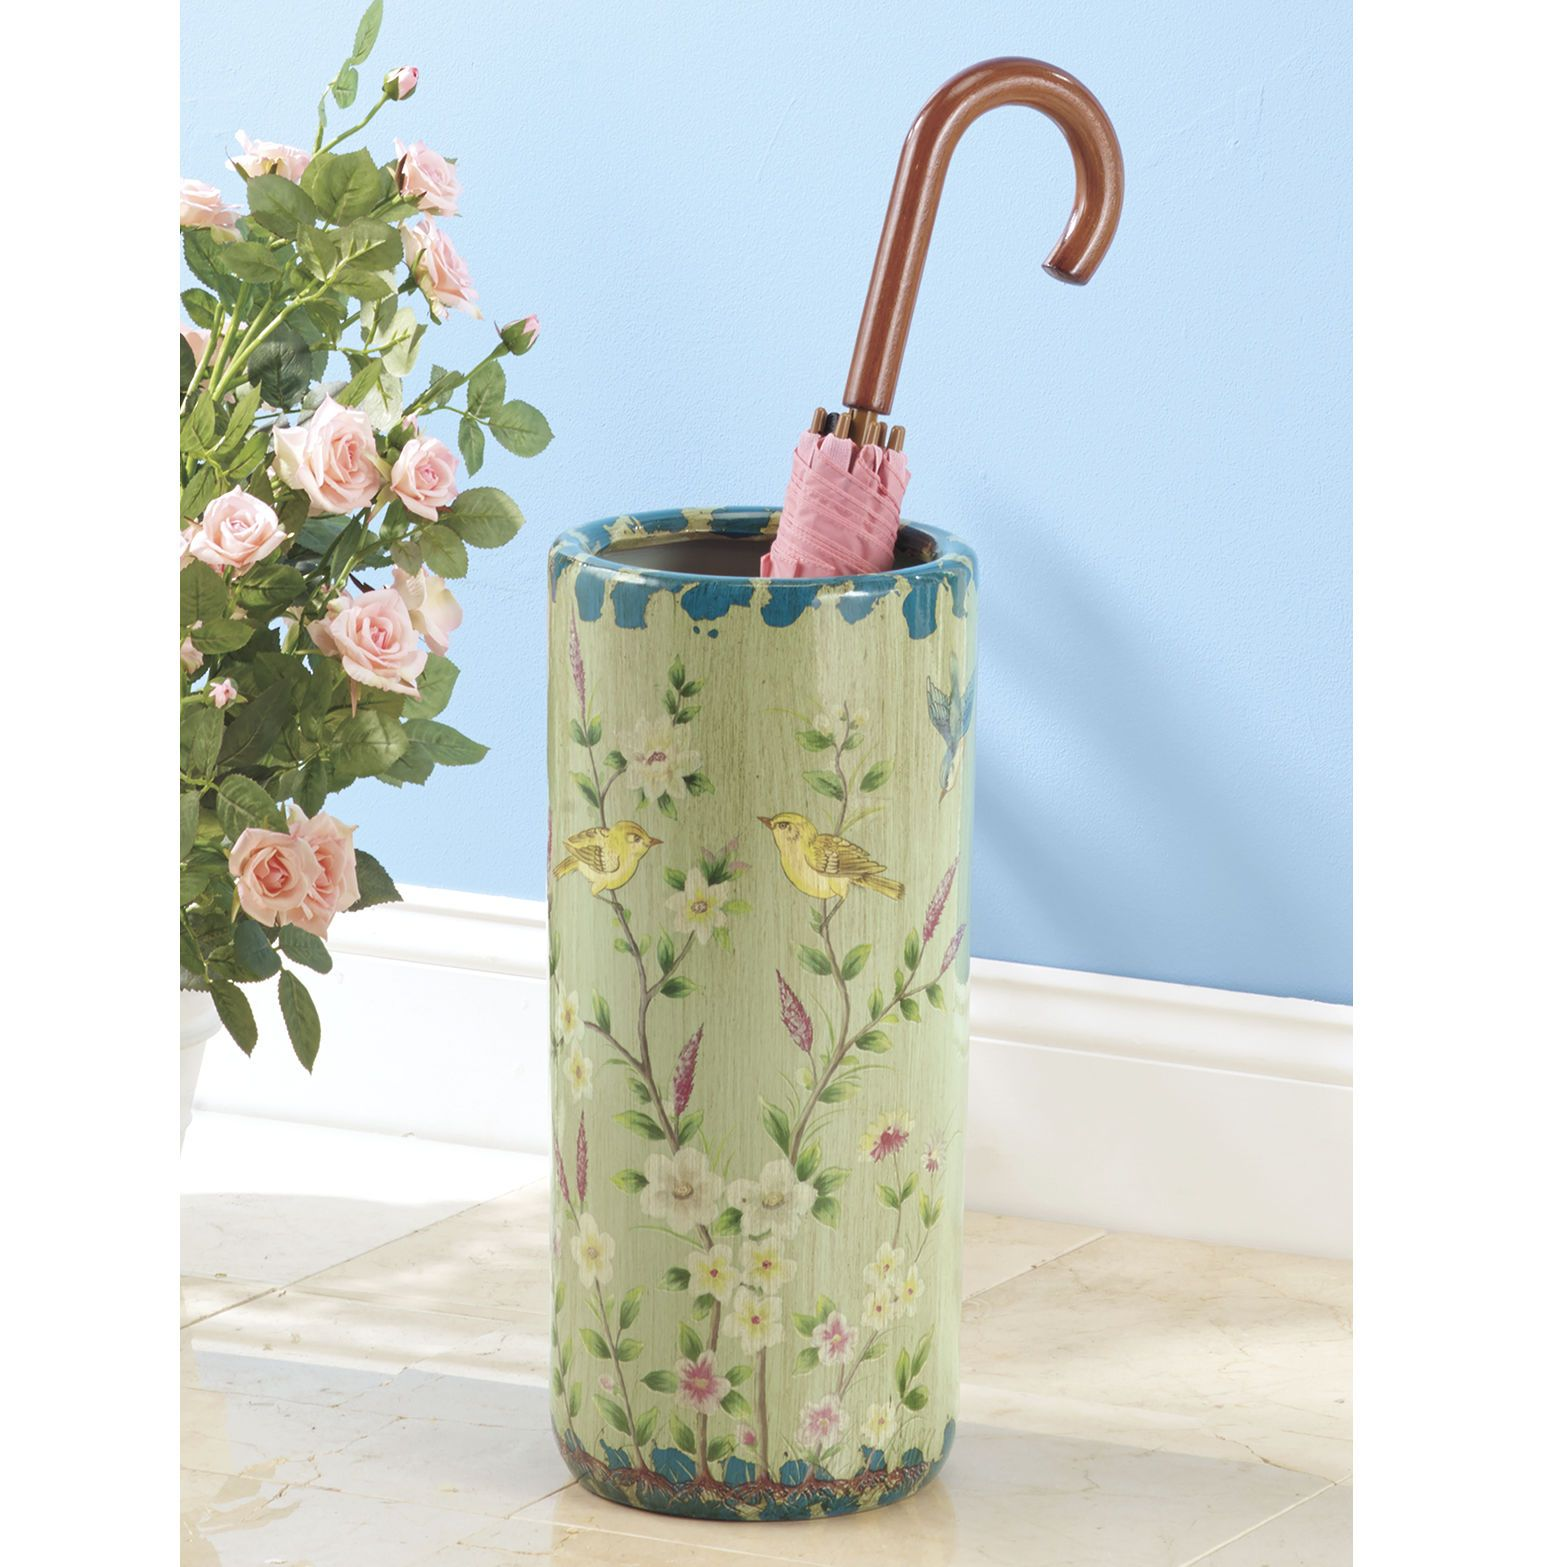 Ceramic Umbrella Stand can be used as a floor vase